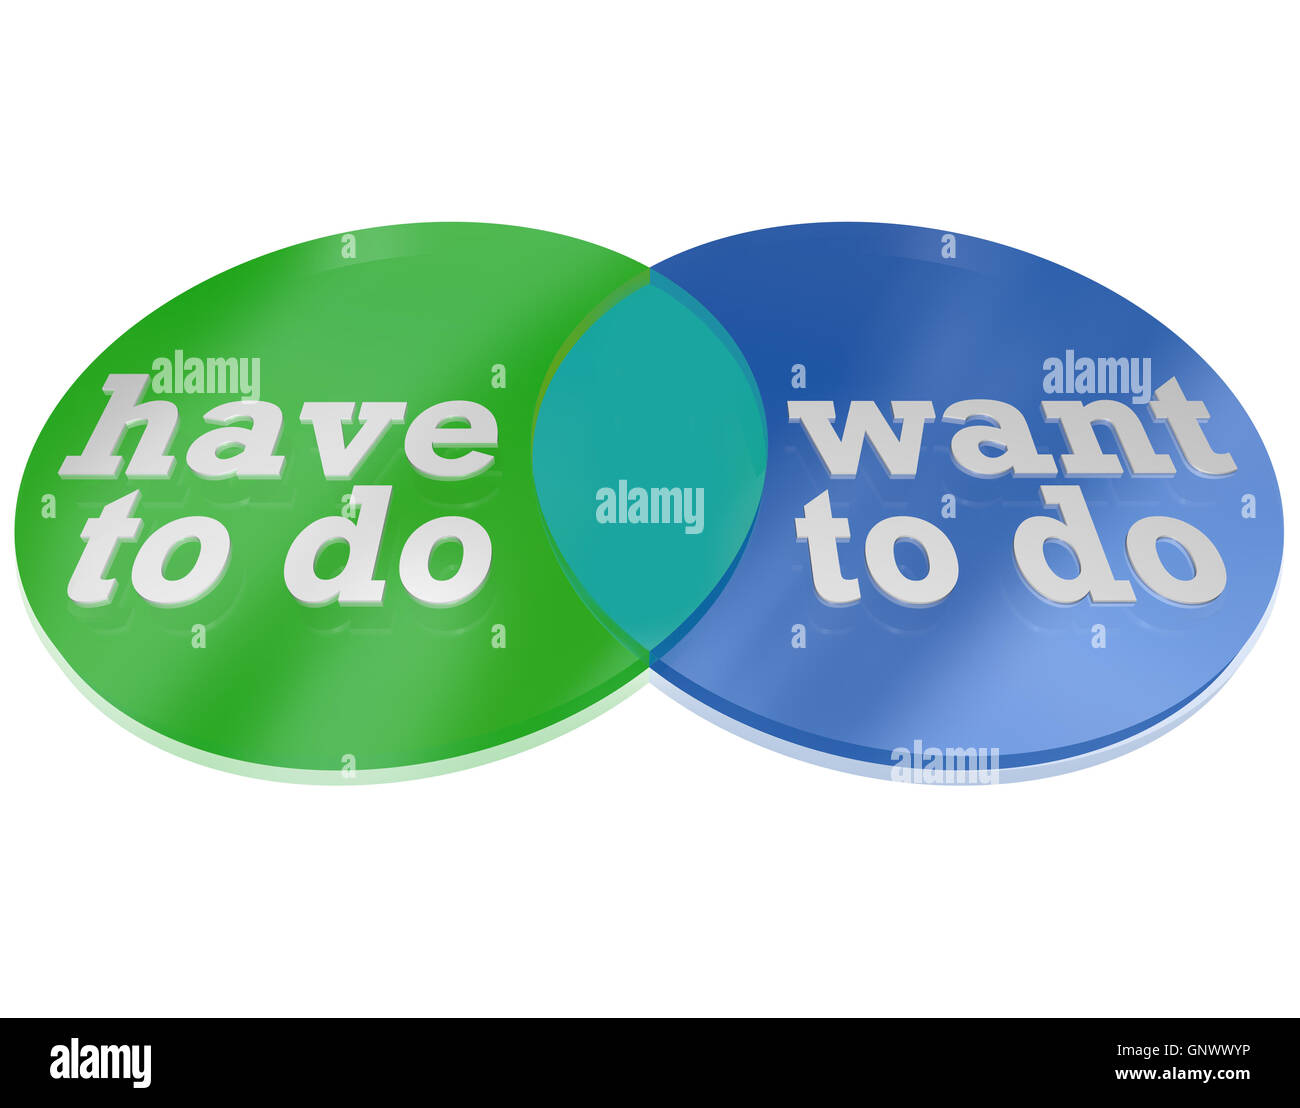 What do you have vs need to do venn diagram decision stock photo what do you have vs need to do venn diagram decision pooptronica